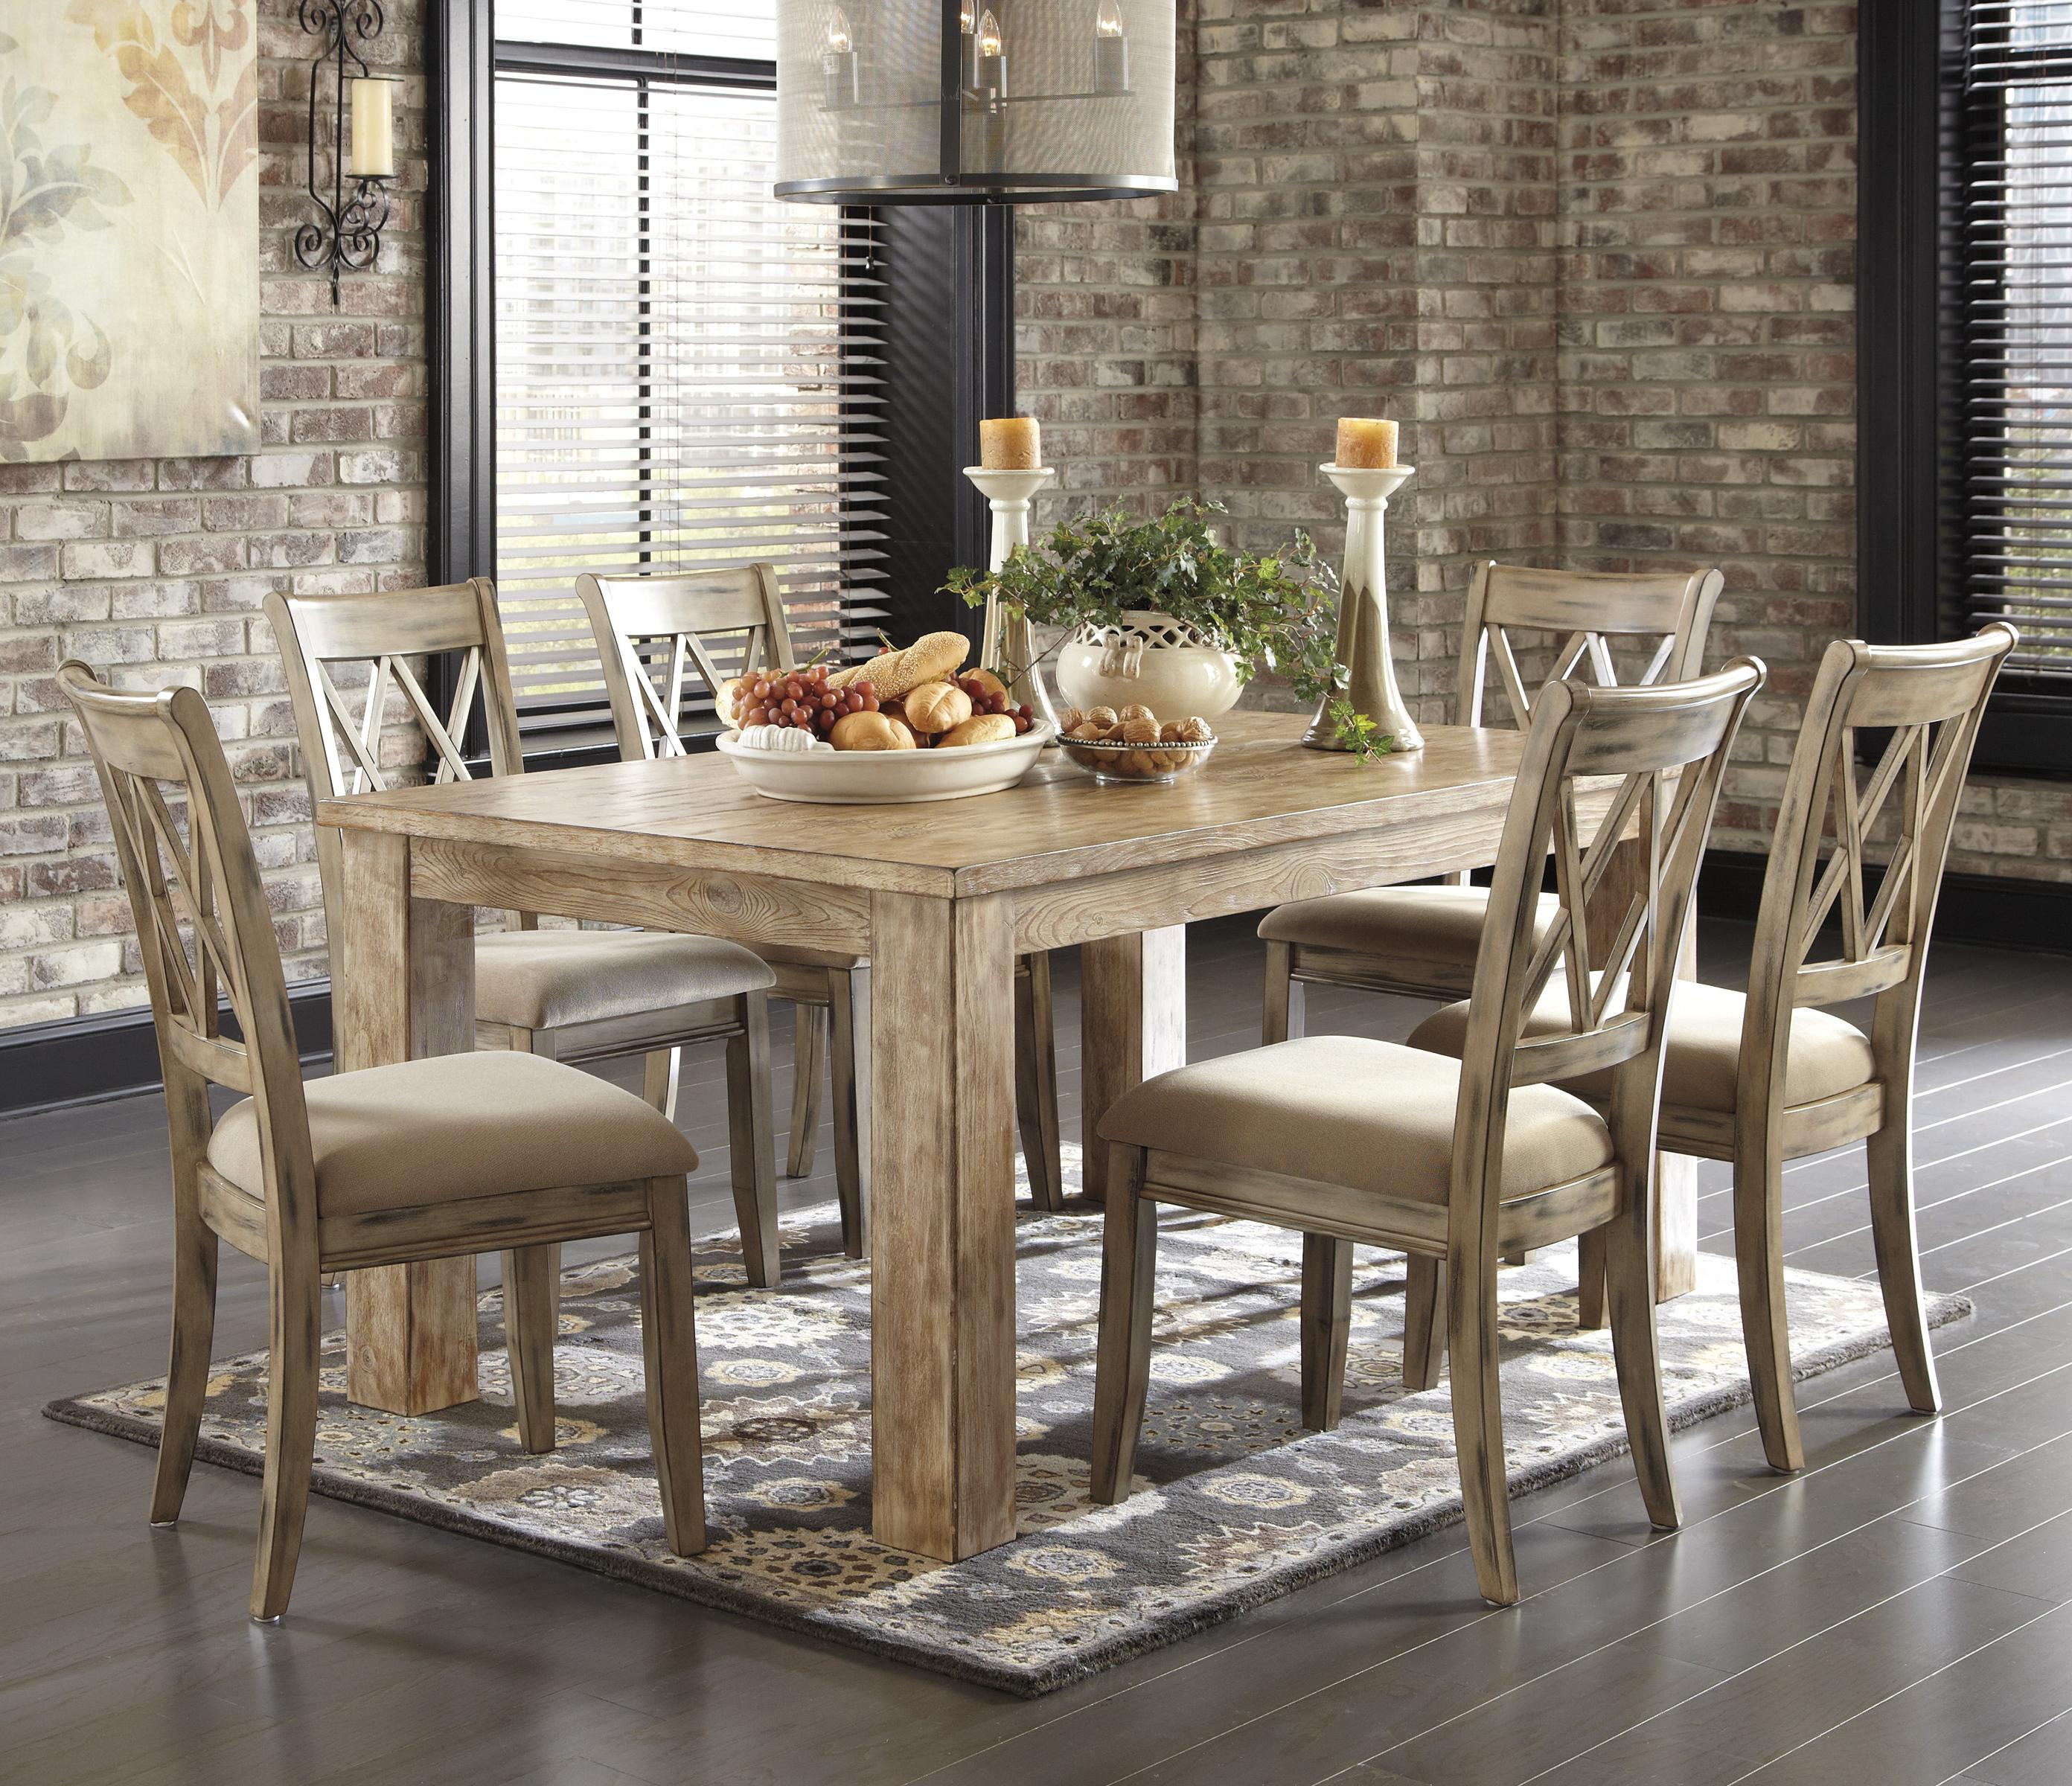 7 Piece Table Set With Antique White Chairs